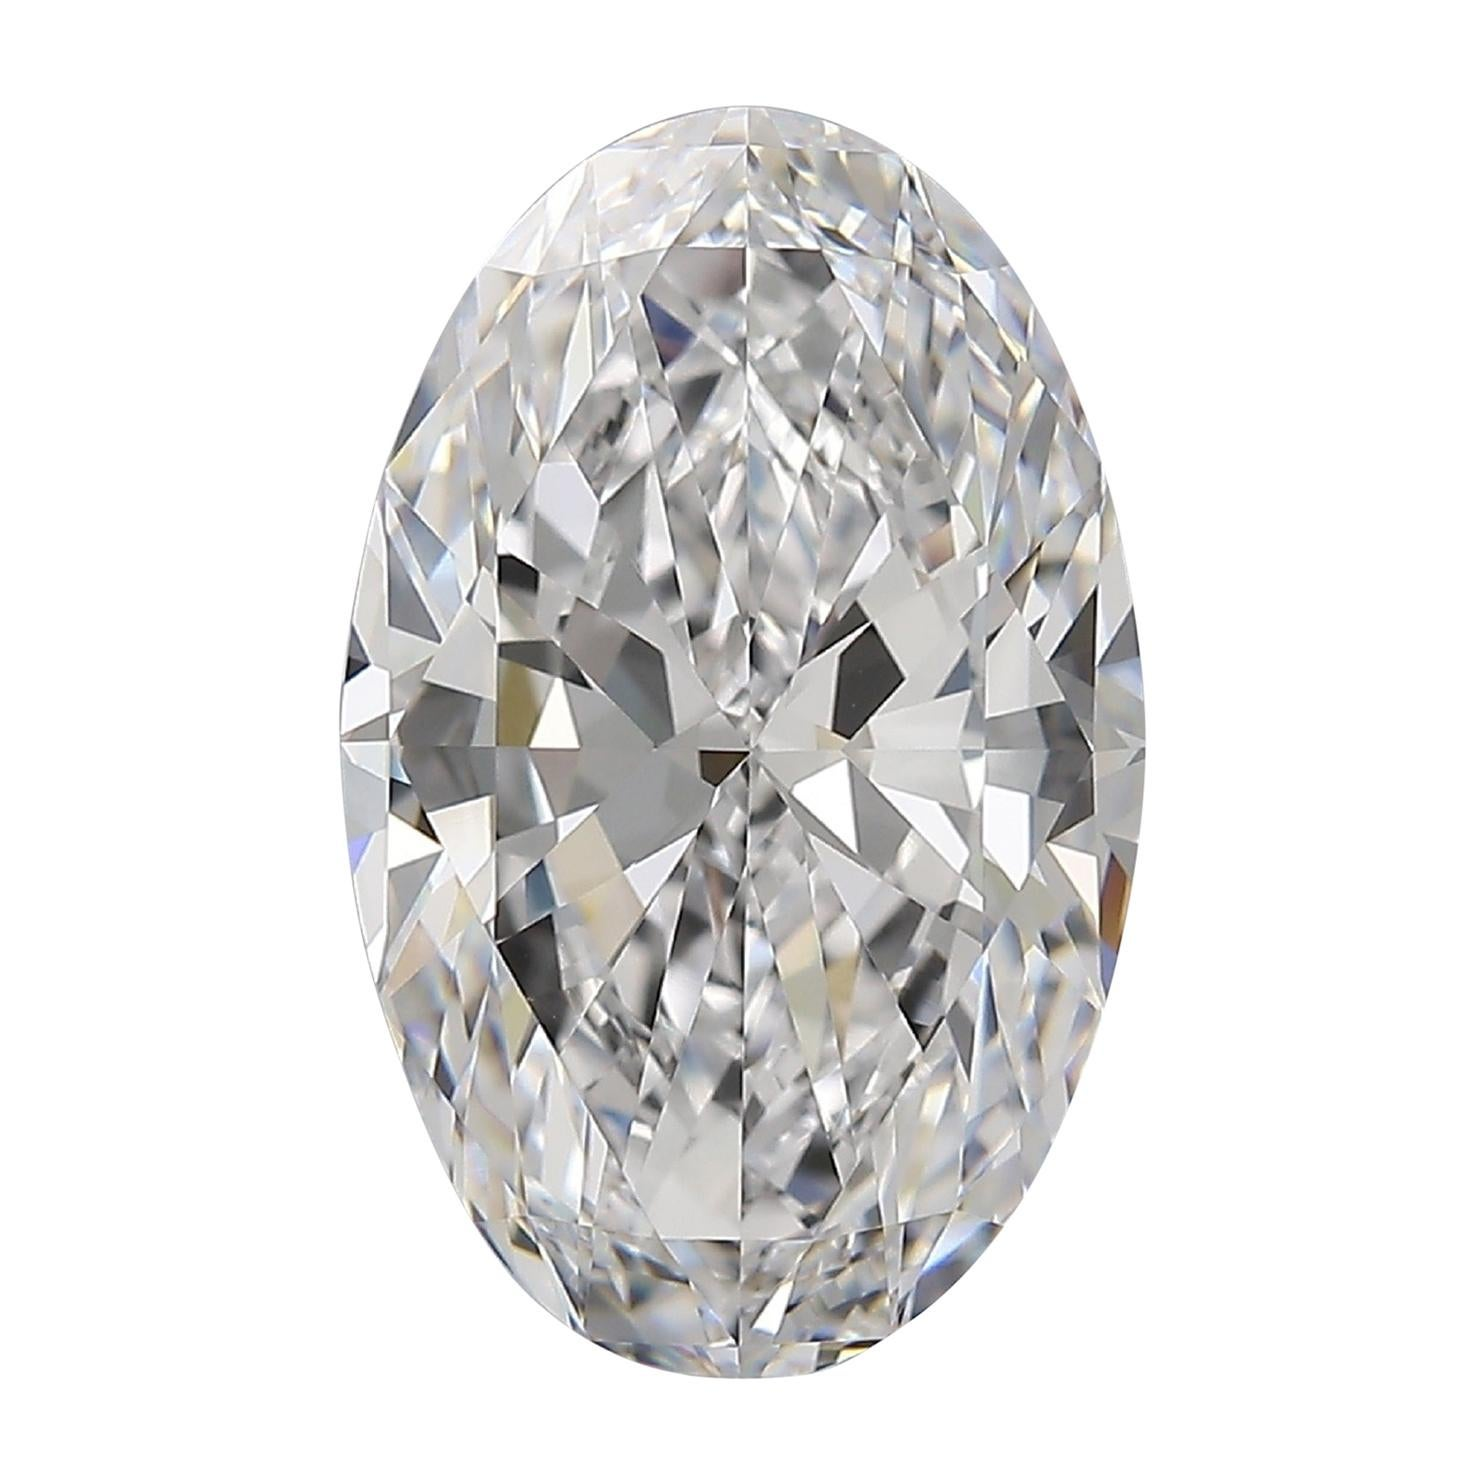 Flawless D Color GIA Certified 6 Carat Oval Diamond